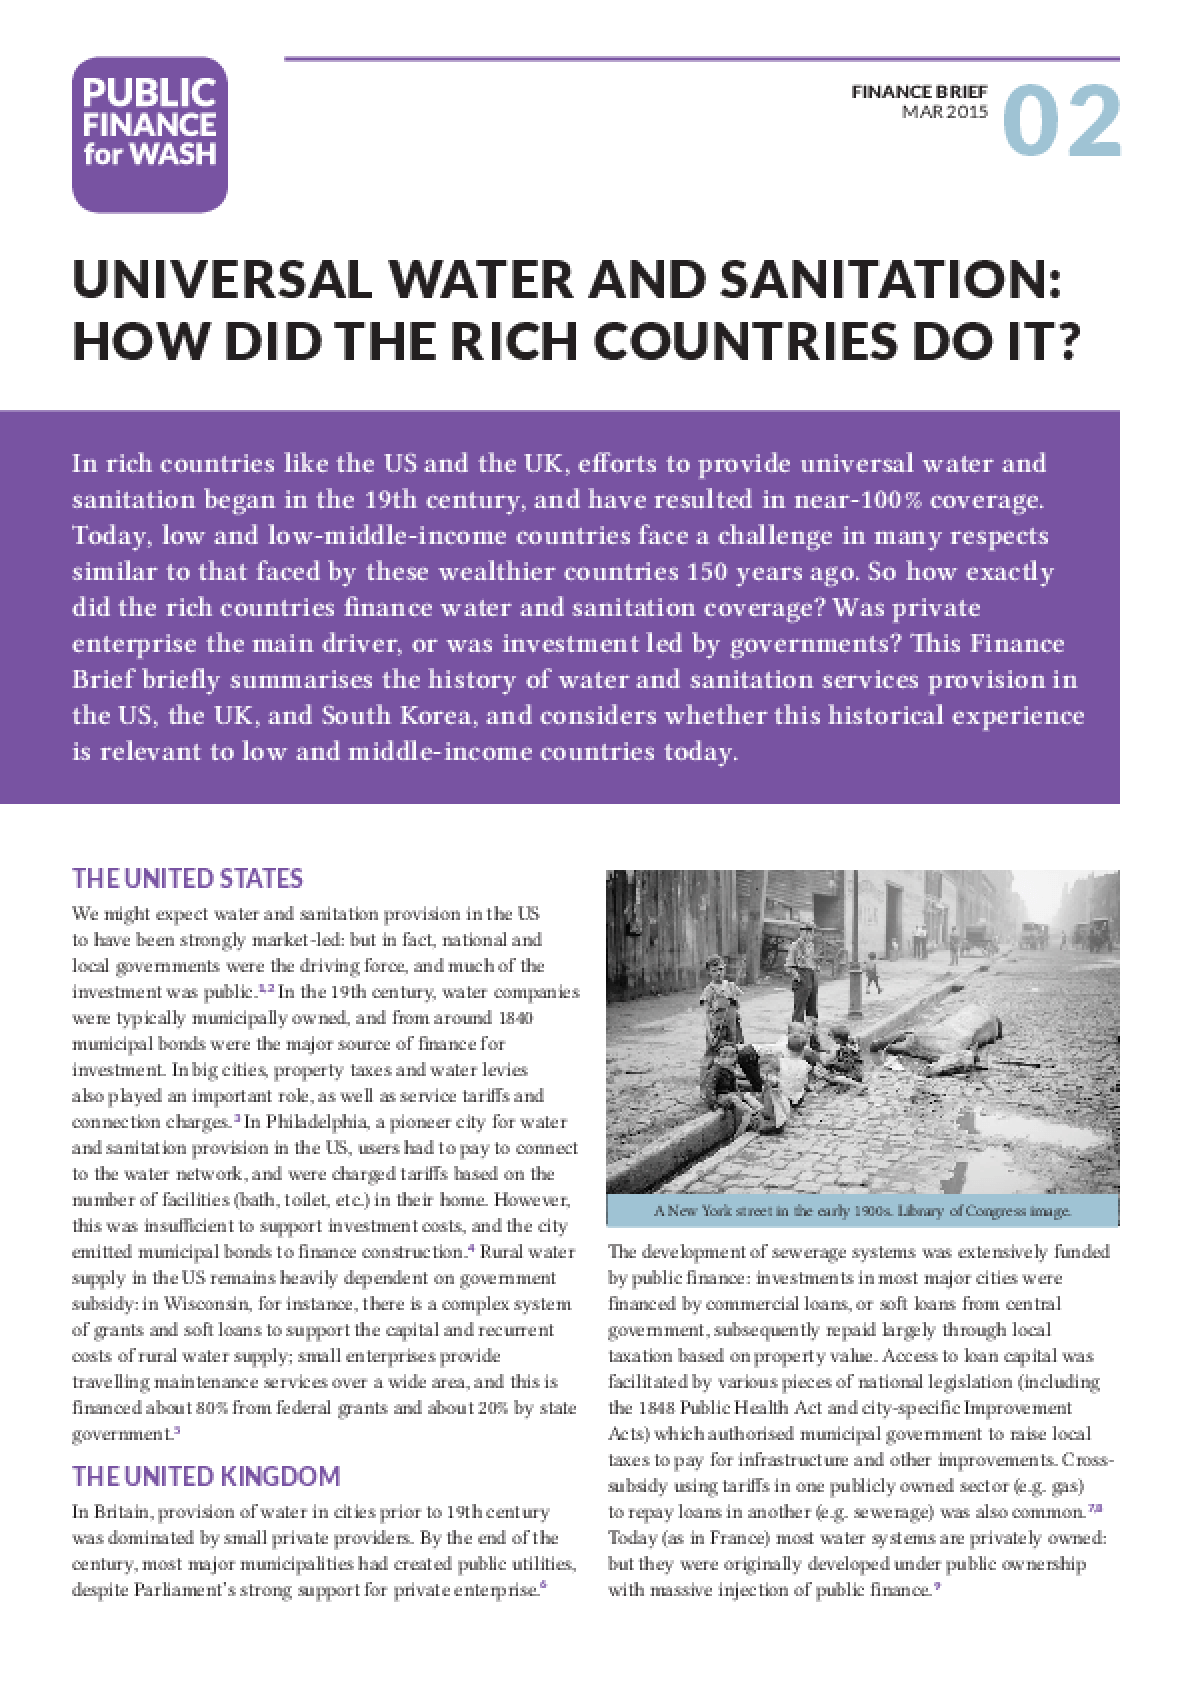 Universal Water and Sanitation: How Did the Rich Countries Do It?